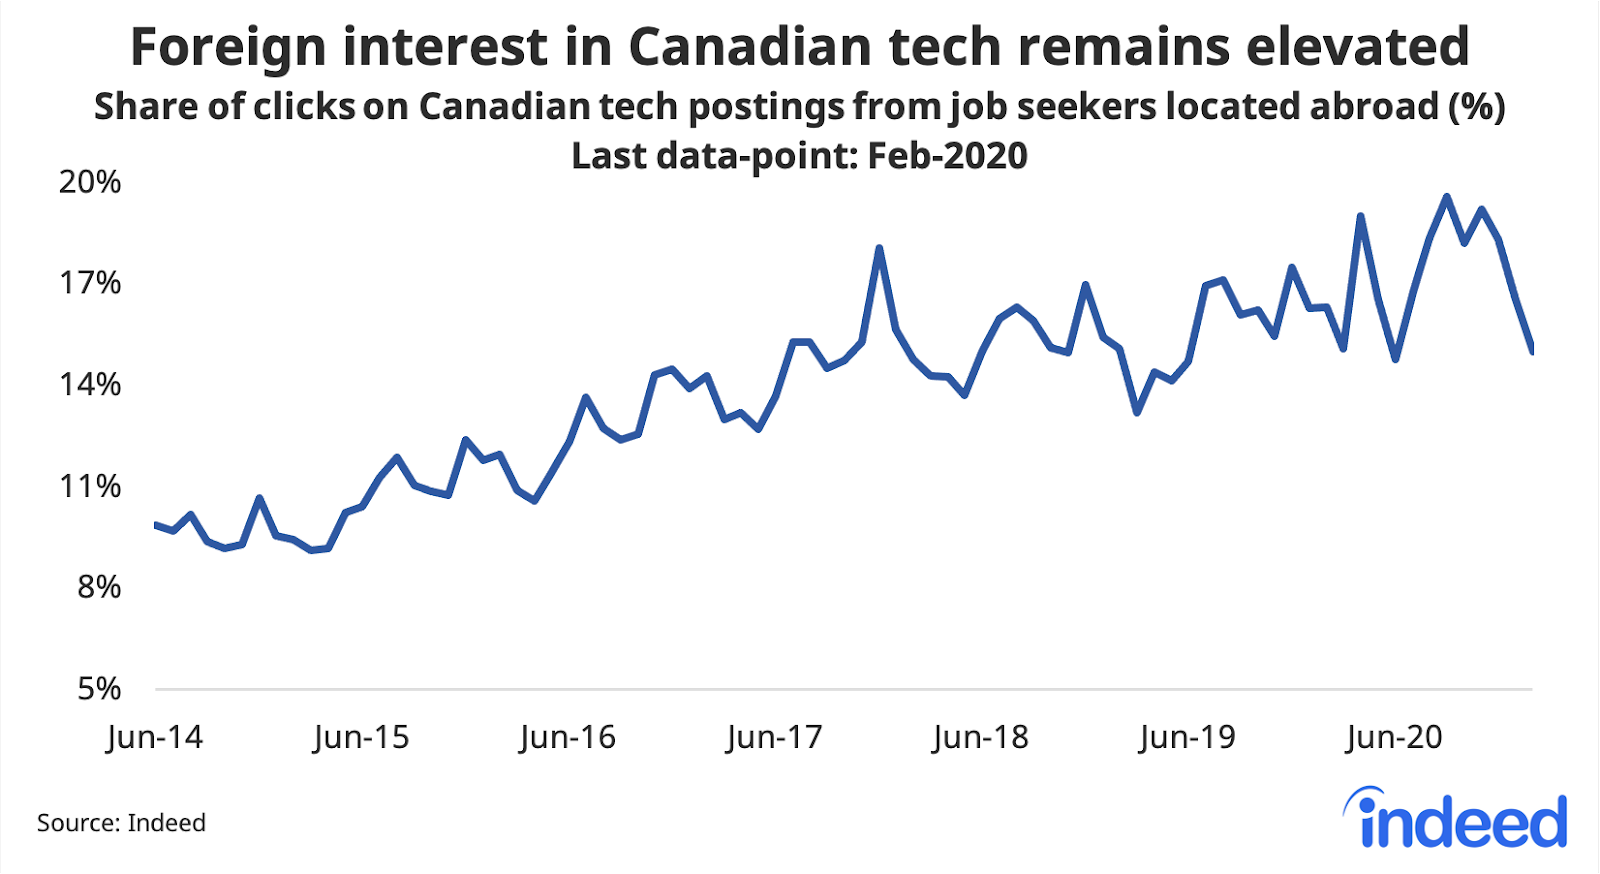 Line graph showing foreign interest in Canadian tech remains elevated